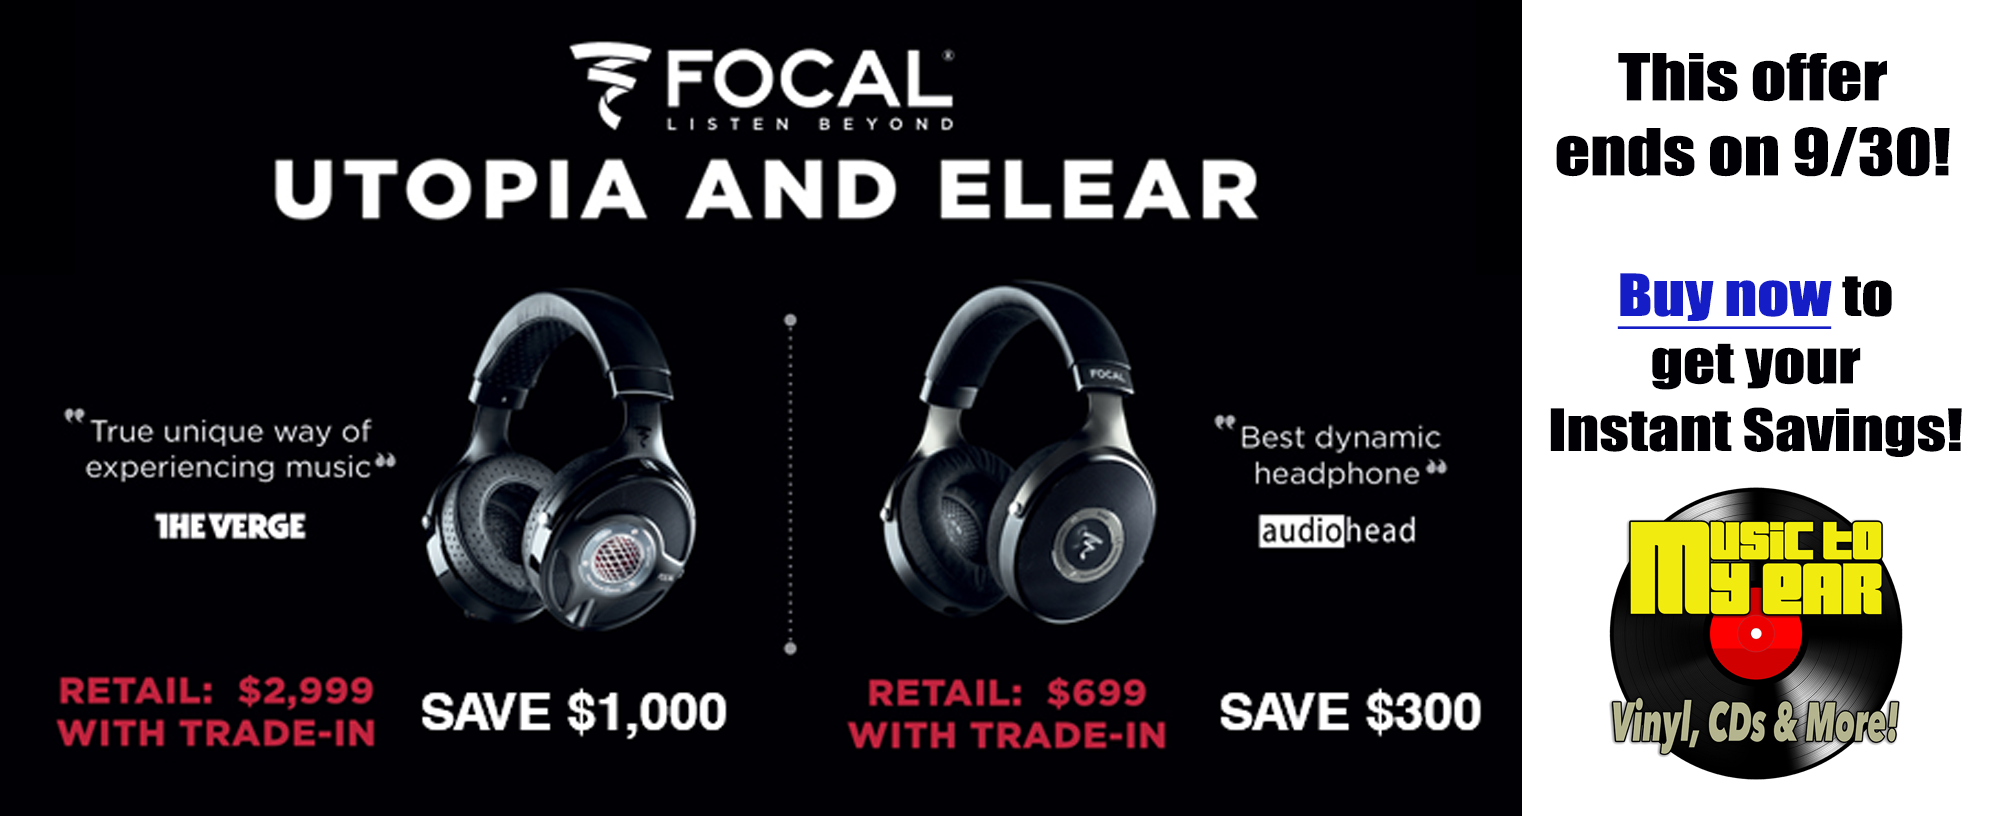 Focal Headphones Trade-In Promotion at Music To My Ear